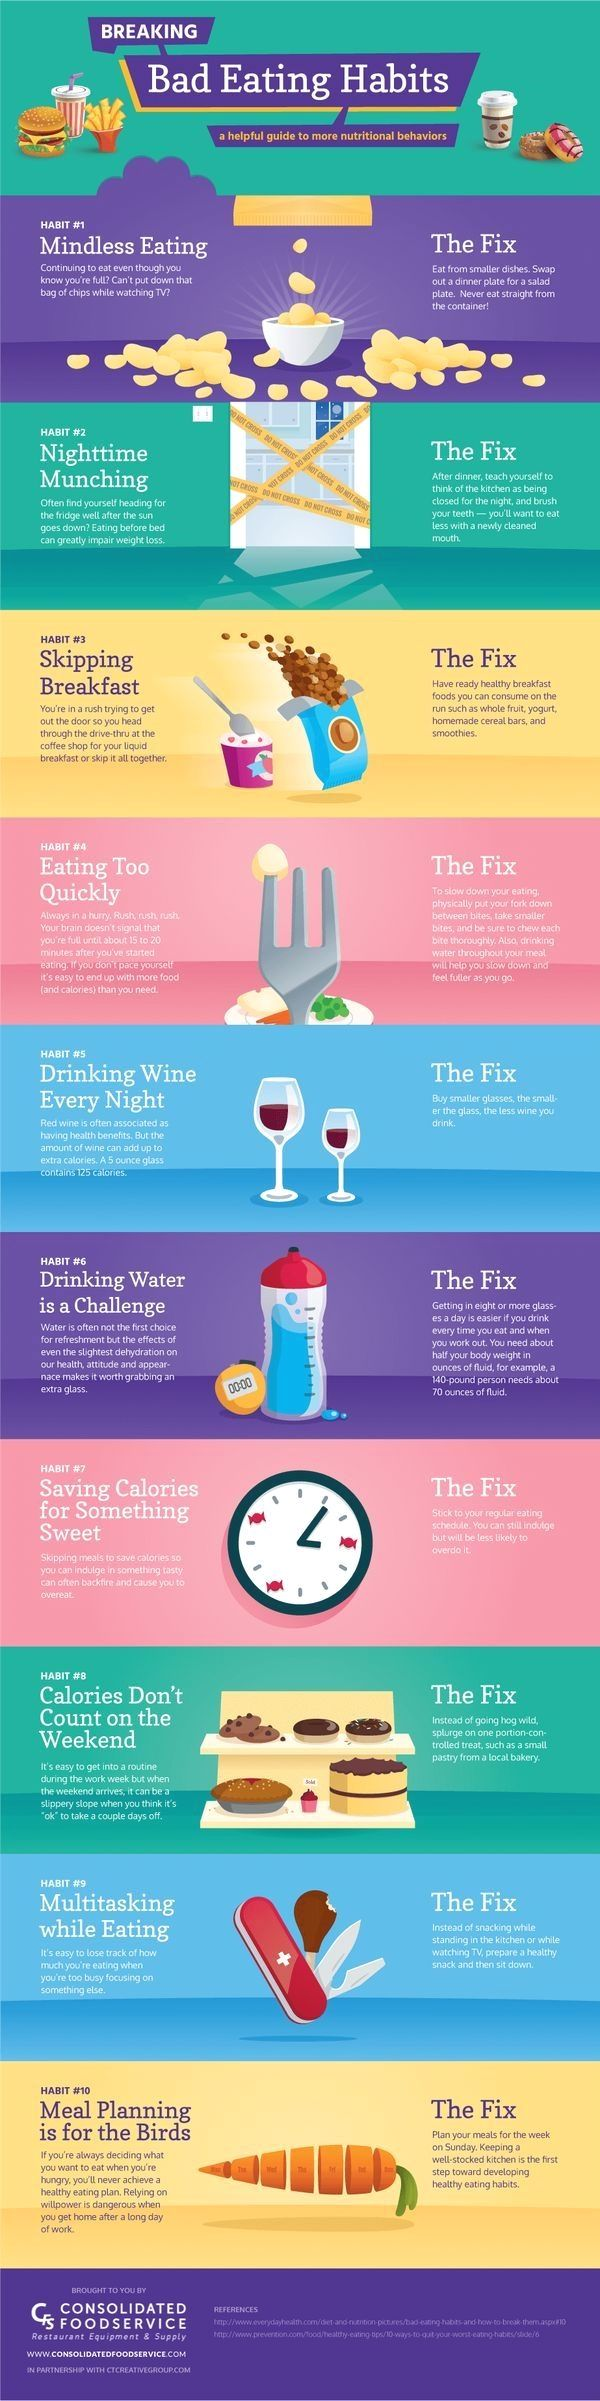 23 best Infographics images on Pinterest | Food service, Infographic ...